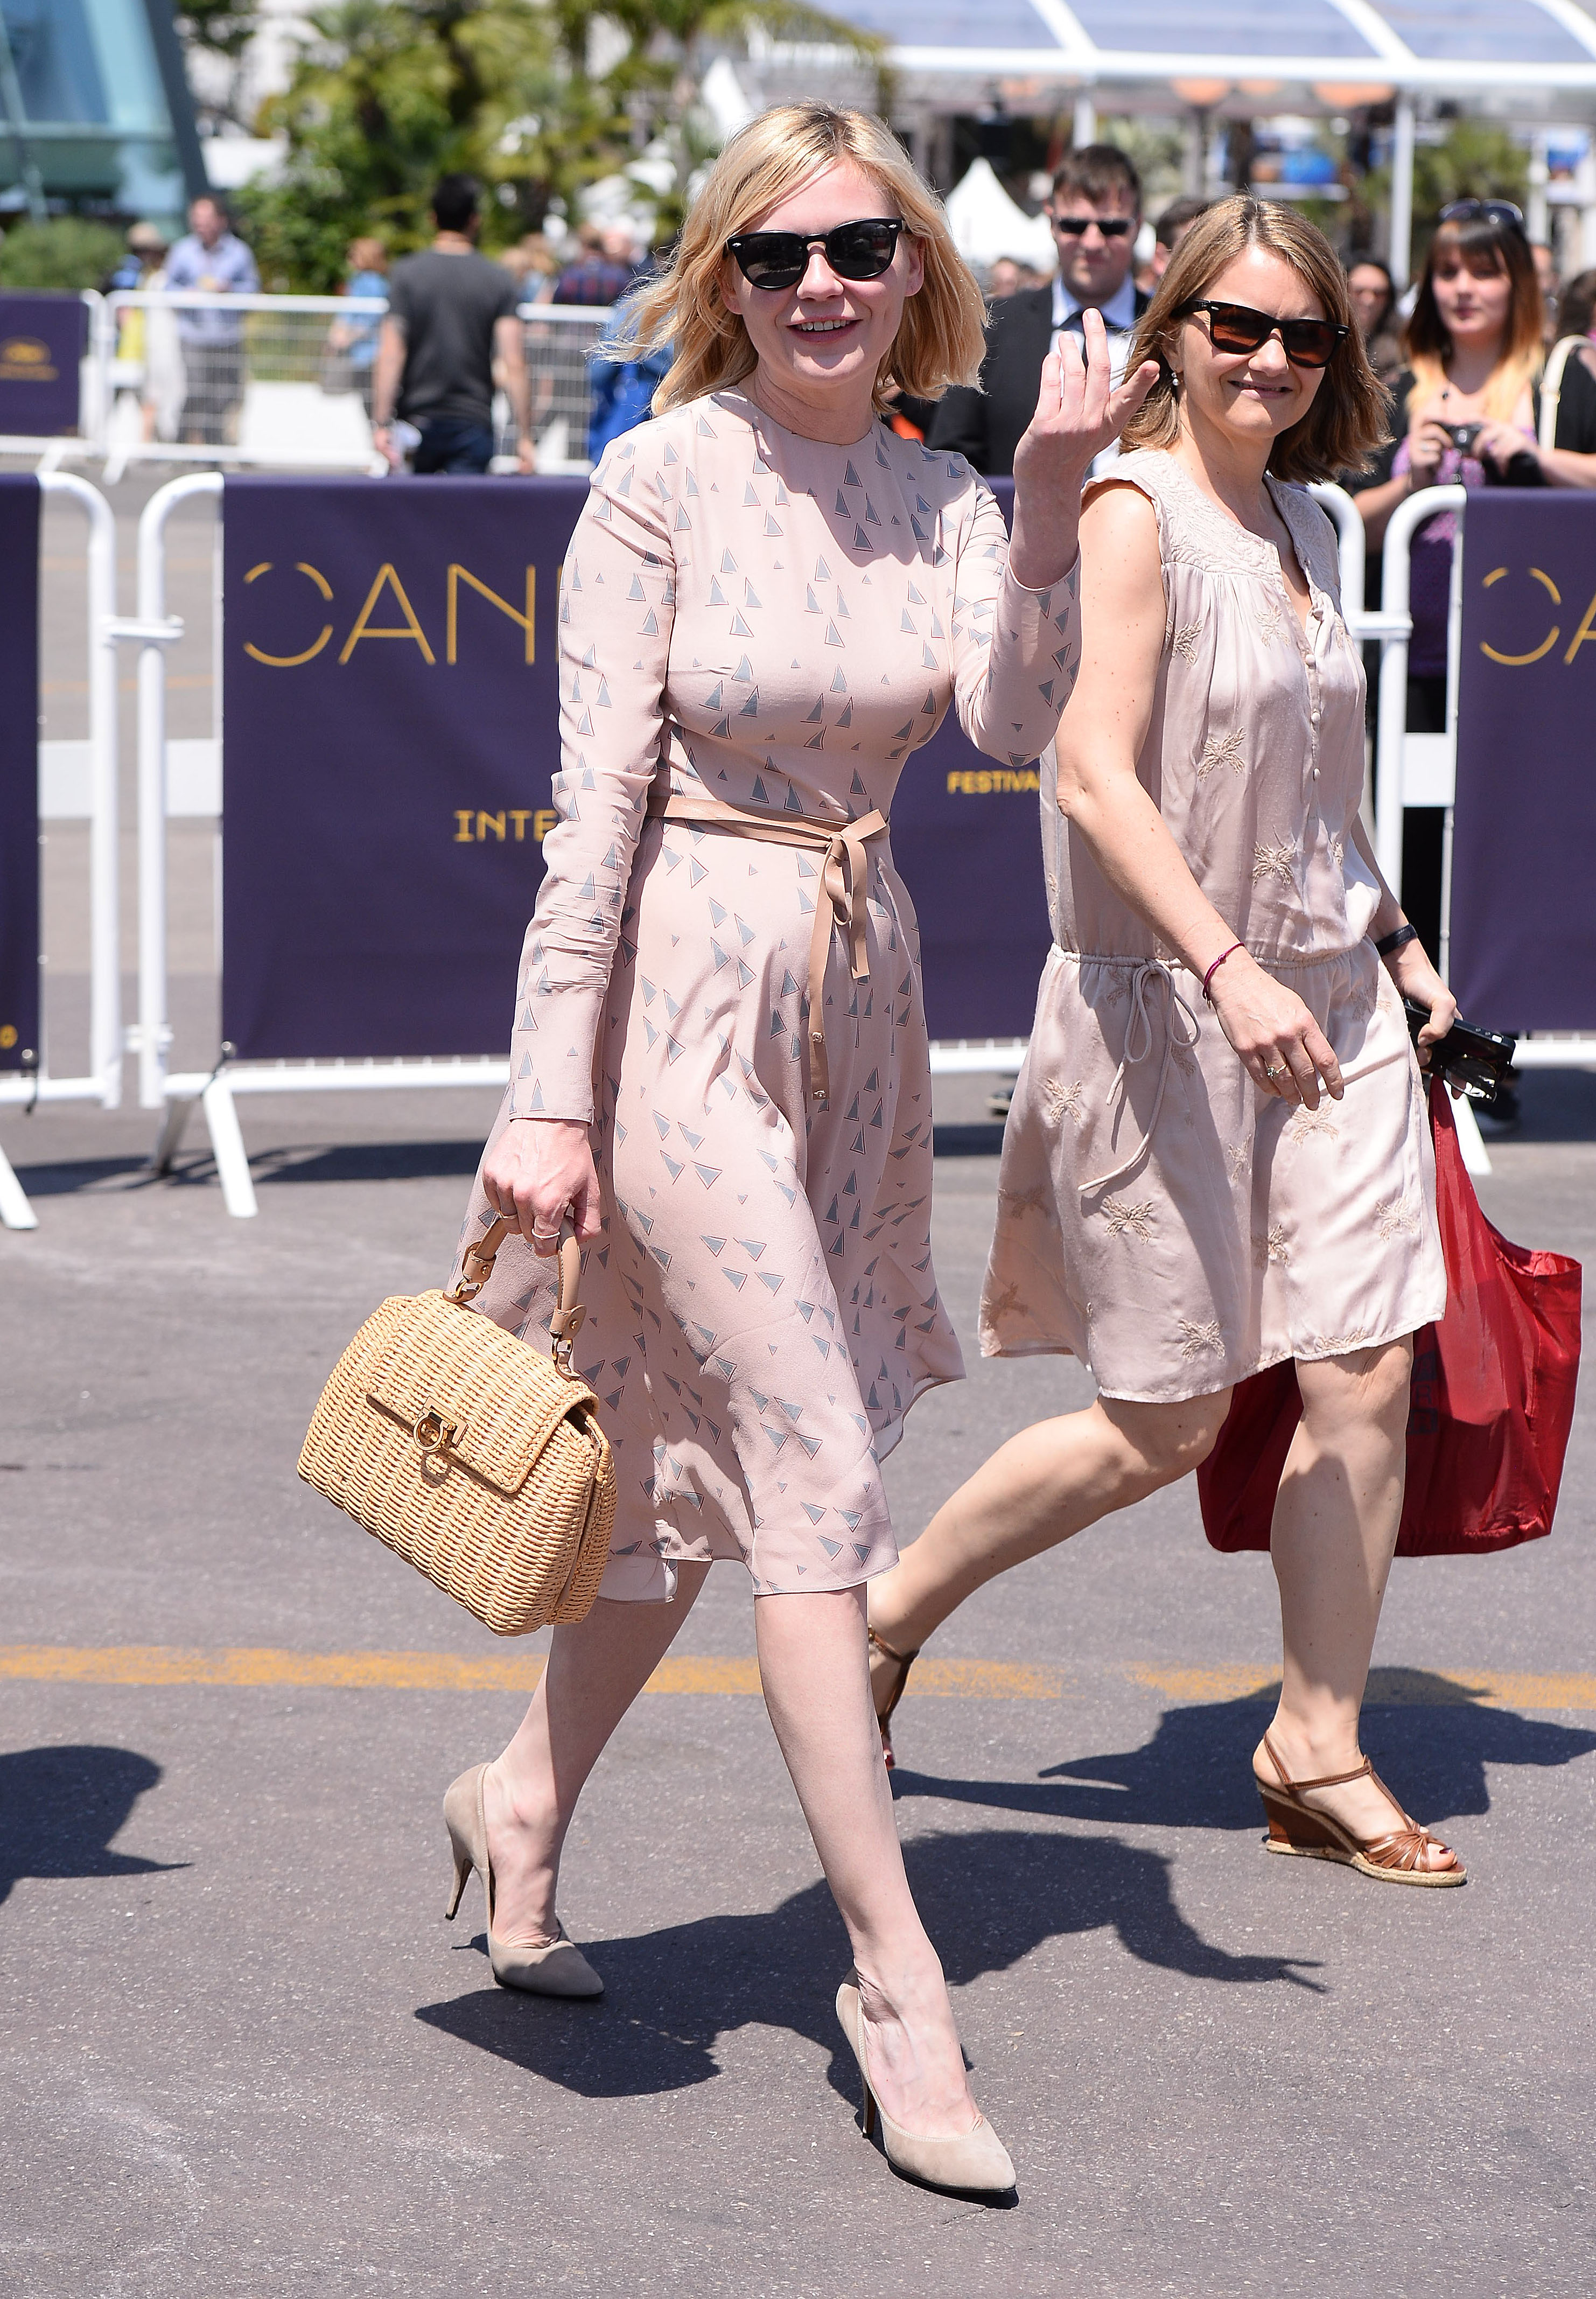 Vanessa Paradis, Kirsten Dunst and Rossy de Palma seen in Cannes, France